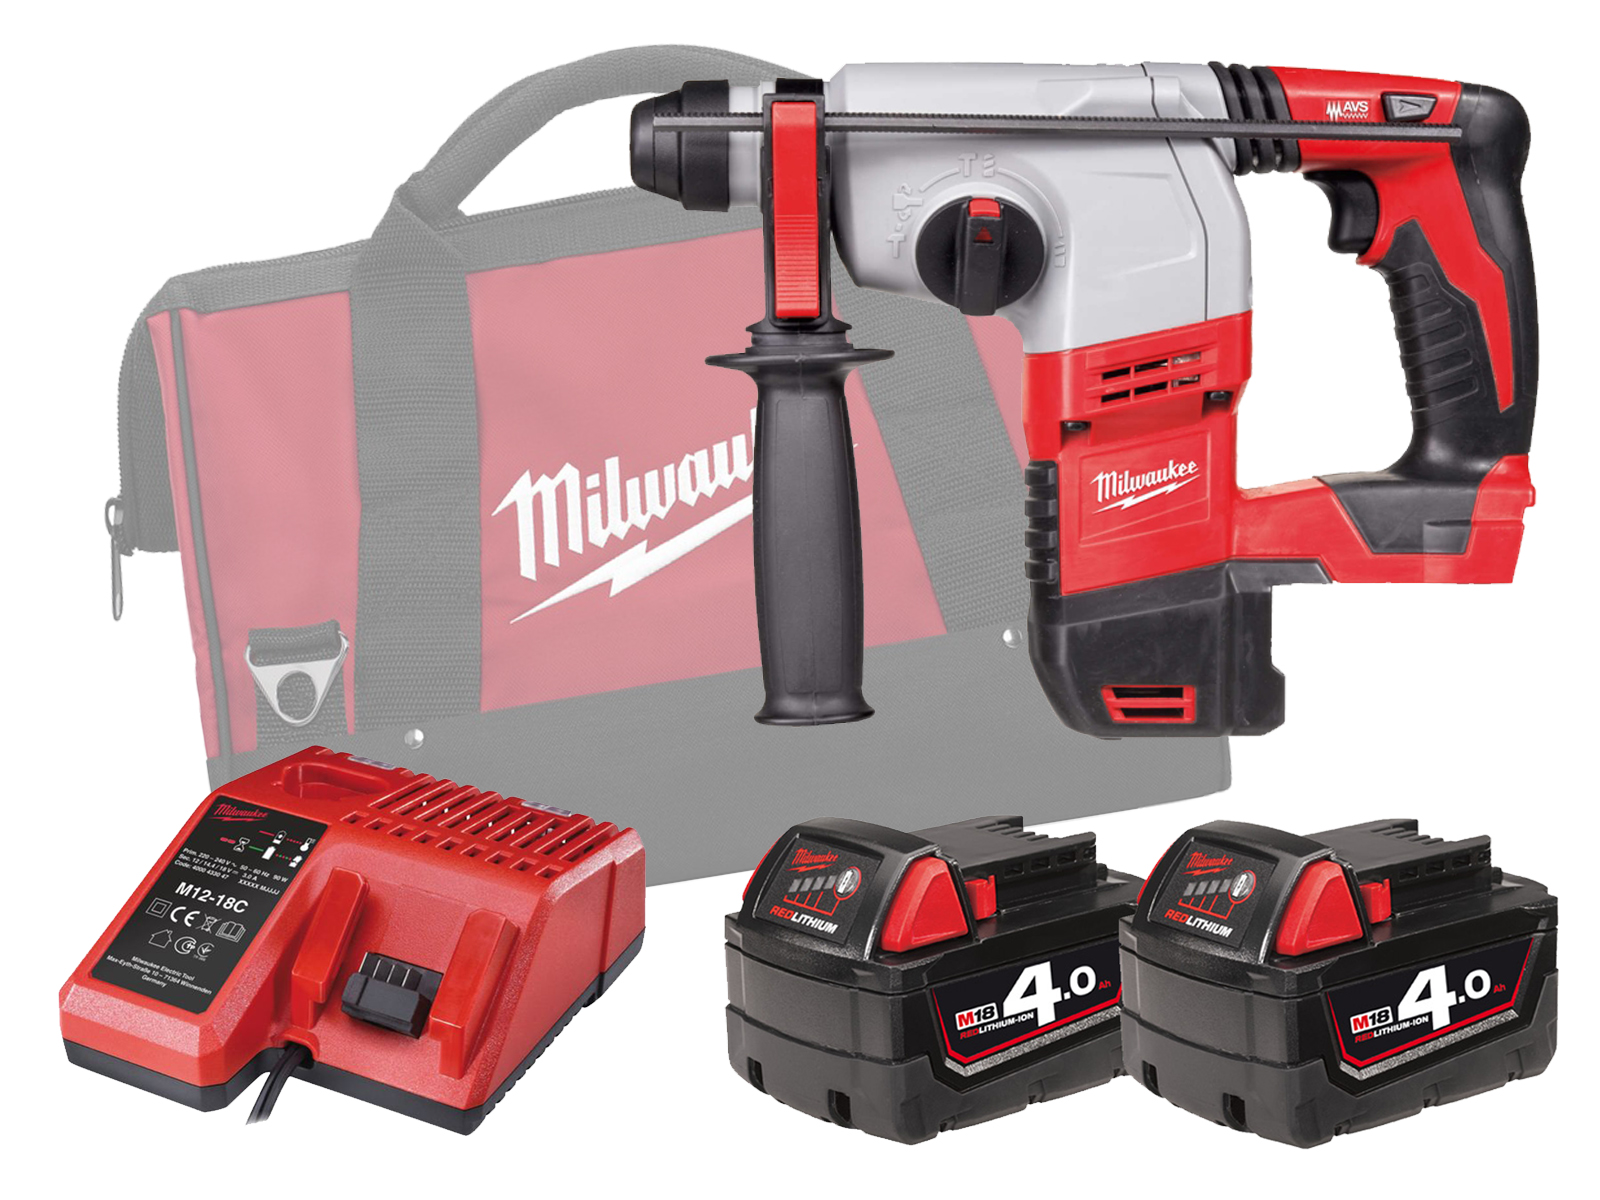 MILWAUKEE 18V BRUSHED 3-MODE SDS PLUS HAMMER - HD18HX - 4.0AH PACK